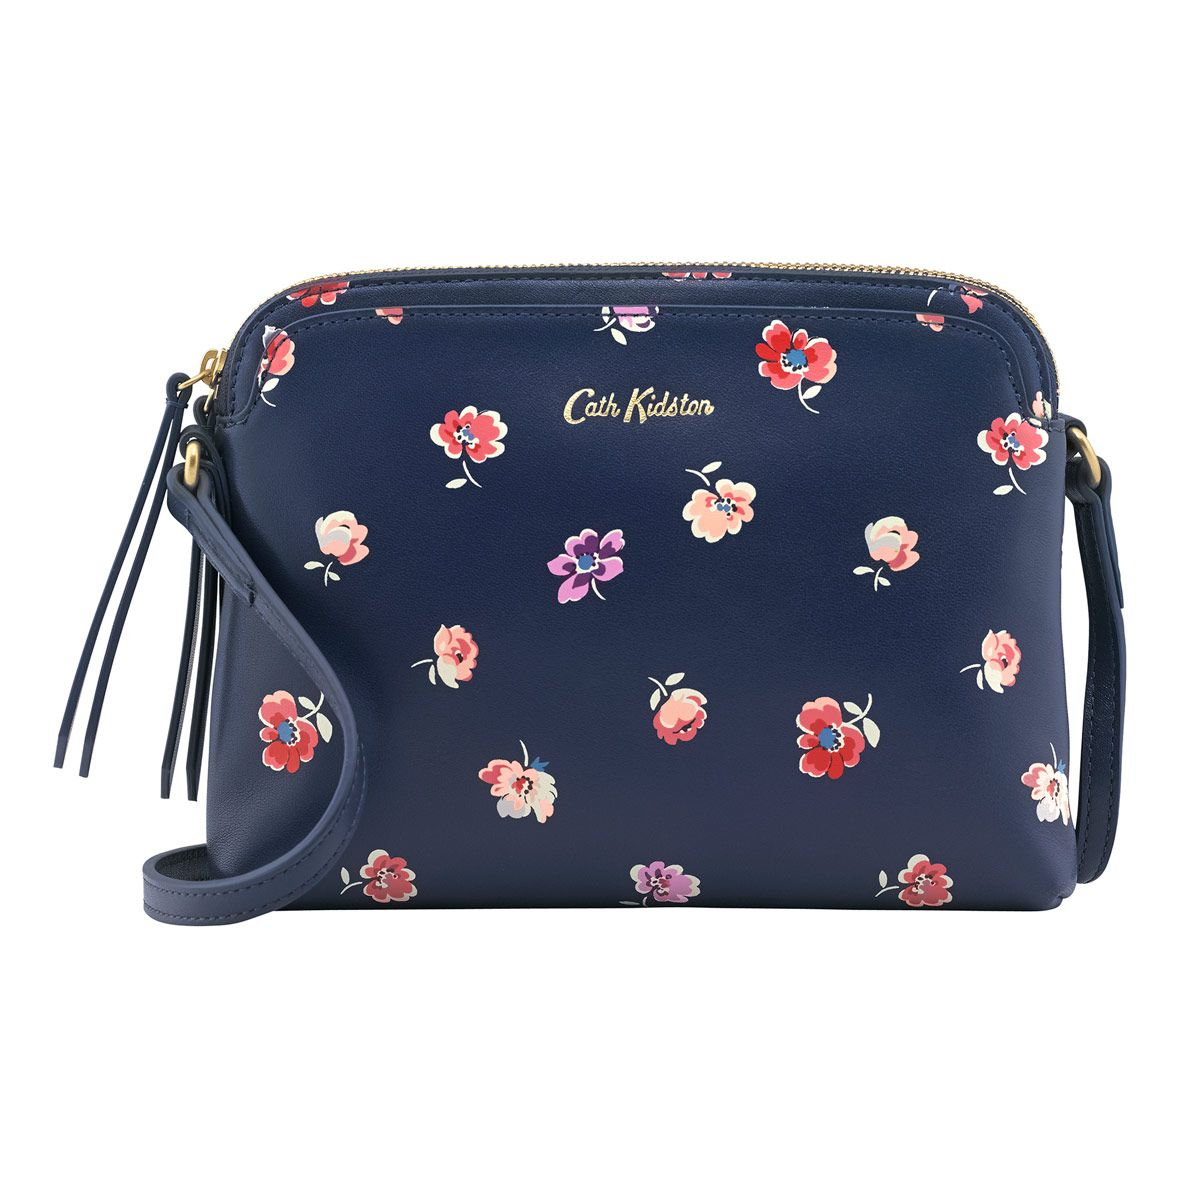 0903b5e835 Mallory Sprig Printed Leather Duo Cross Body